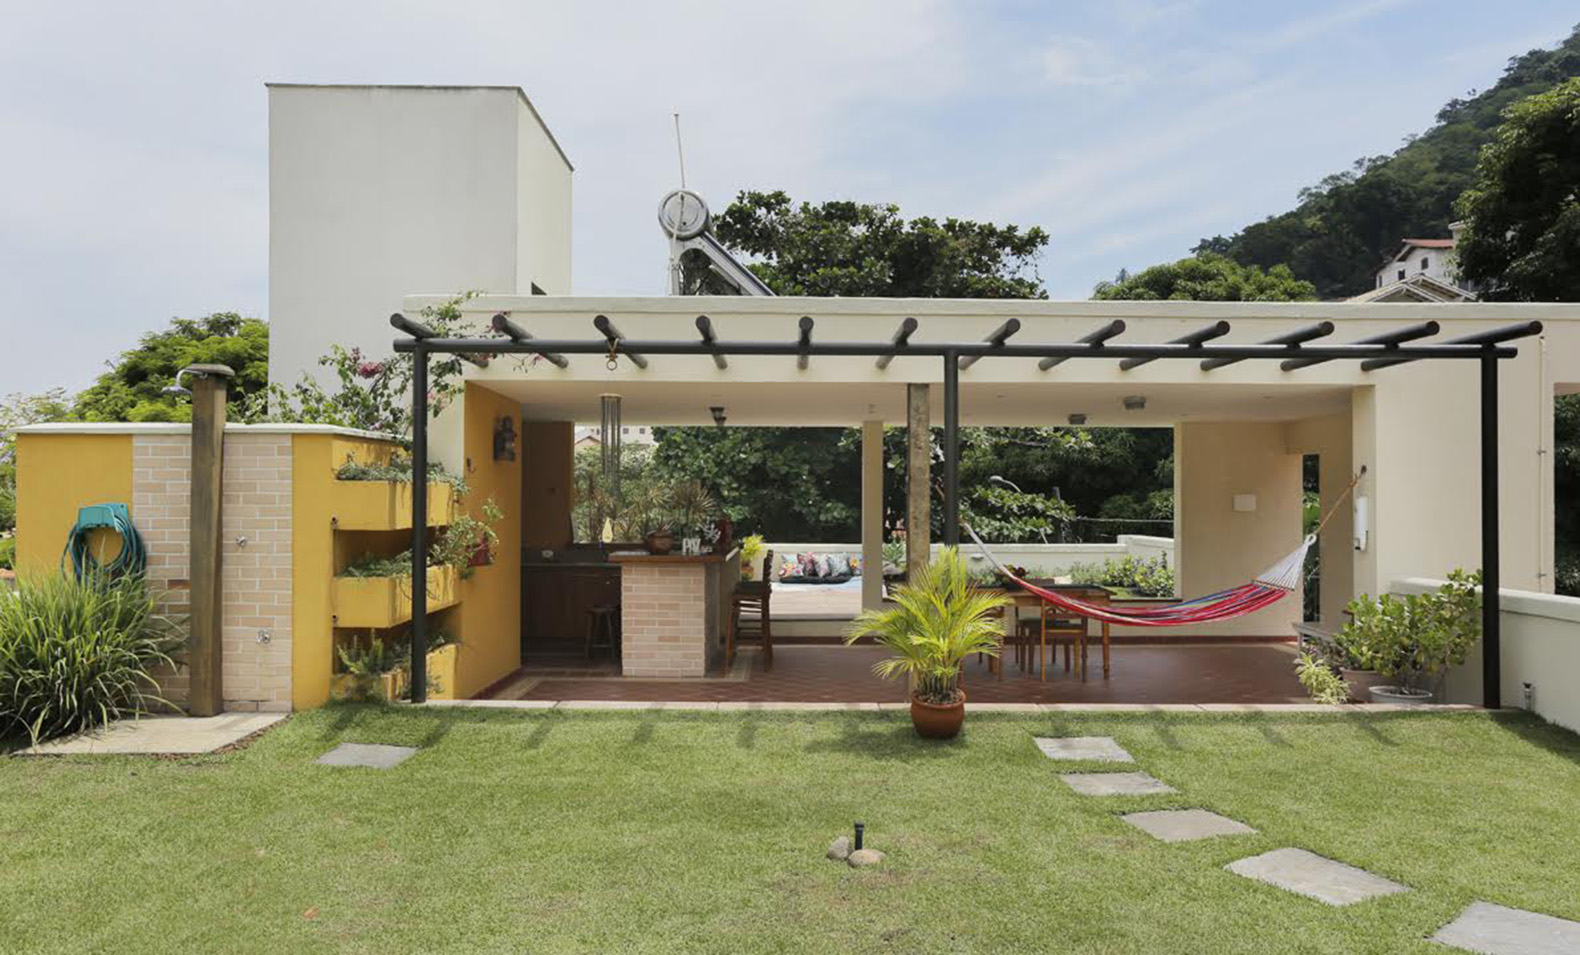 camille kurowskys green roof house is a rustic leisure home in brazil